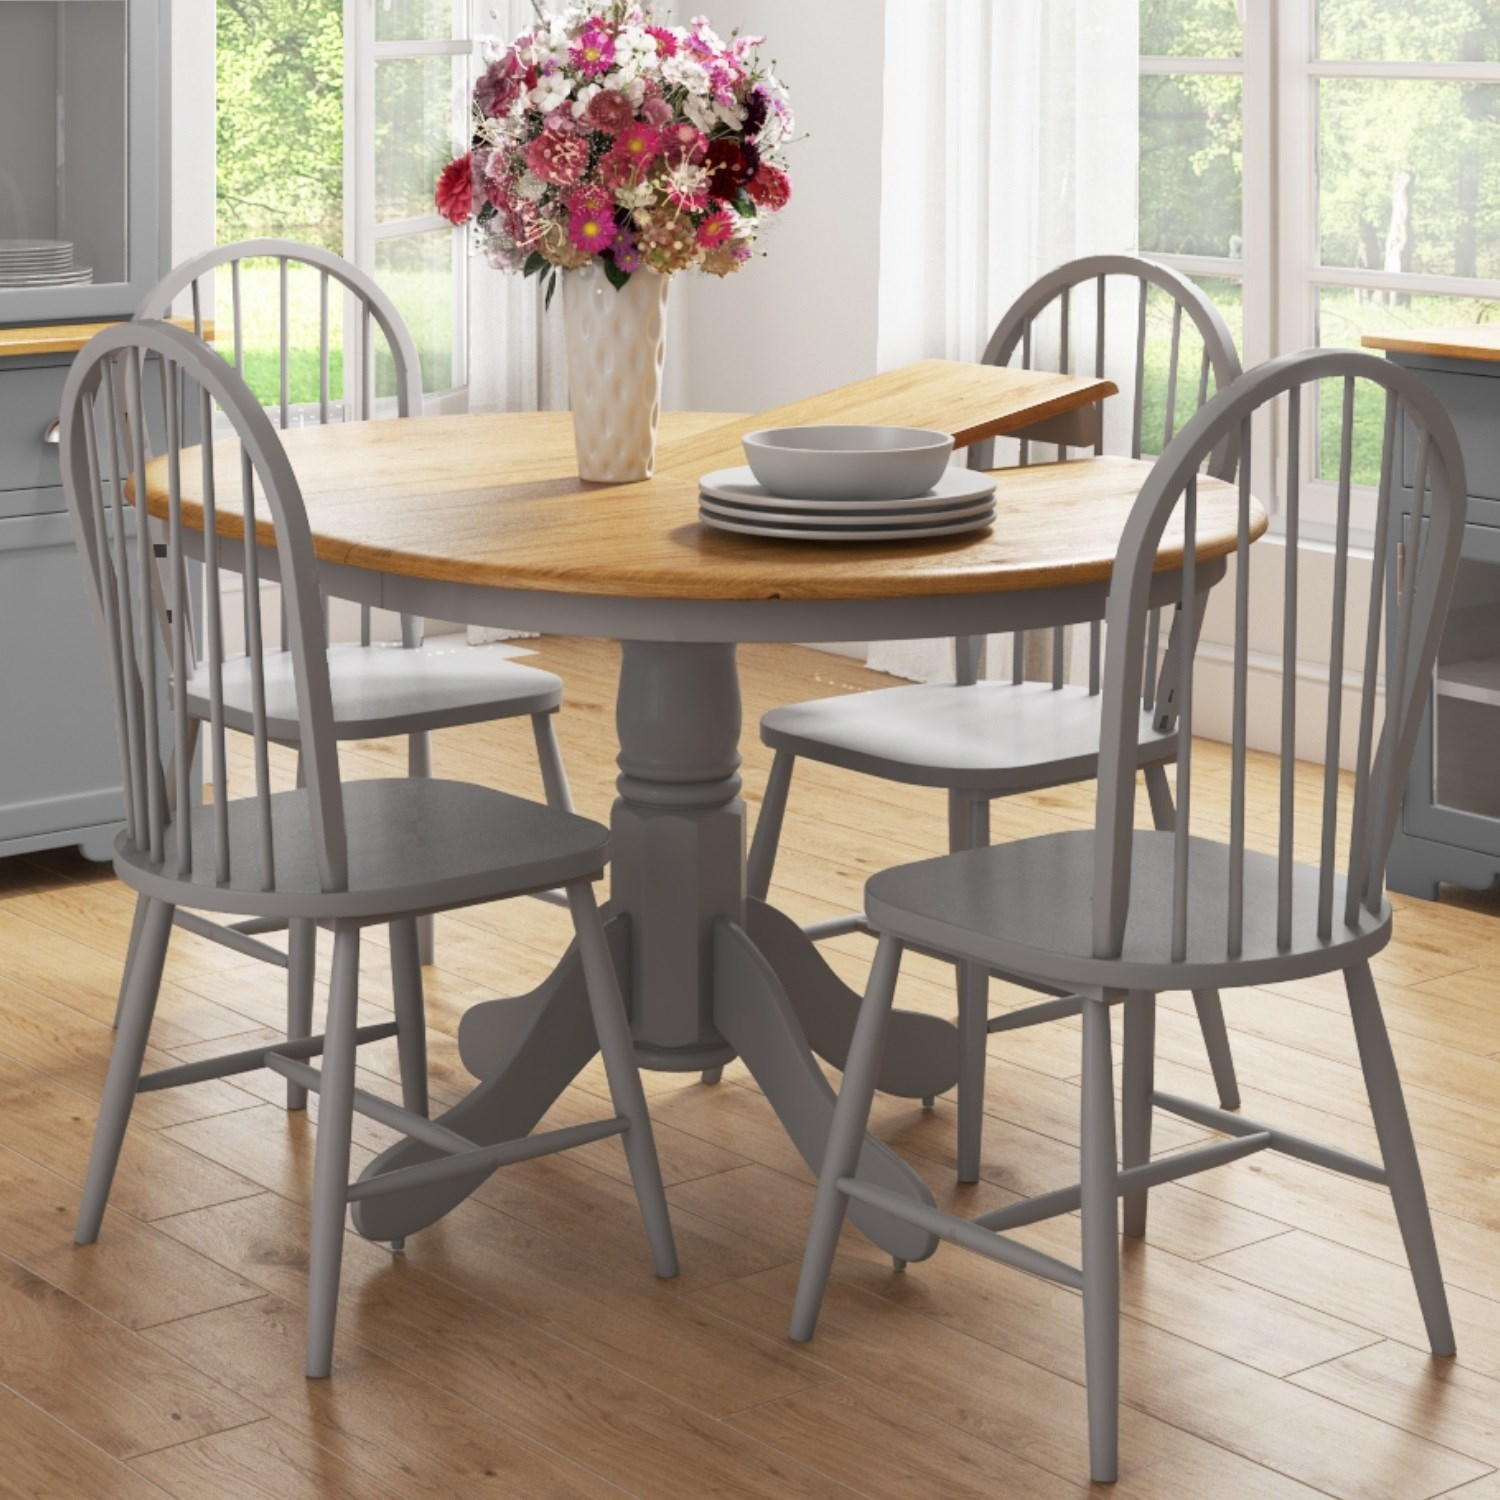 Round Extendable Dining Table Set With 4 Grey Wooden Dining Chairs Rhode Island Furniture123